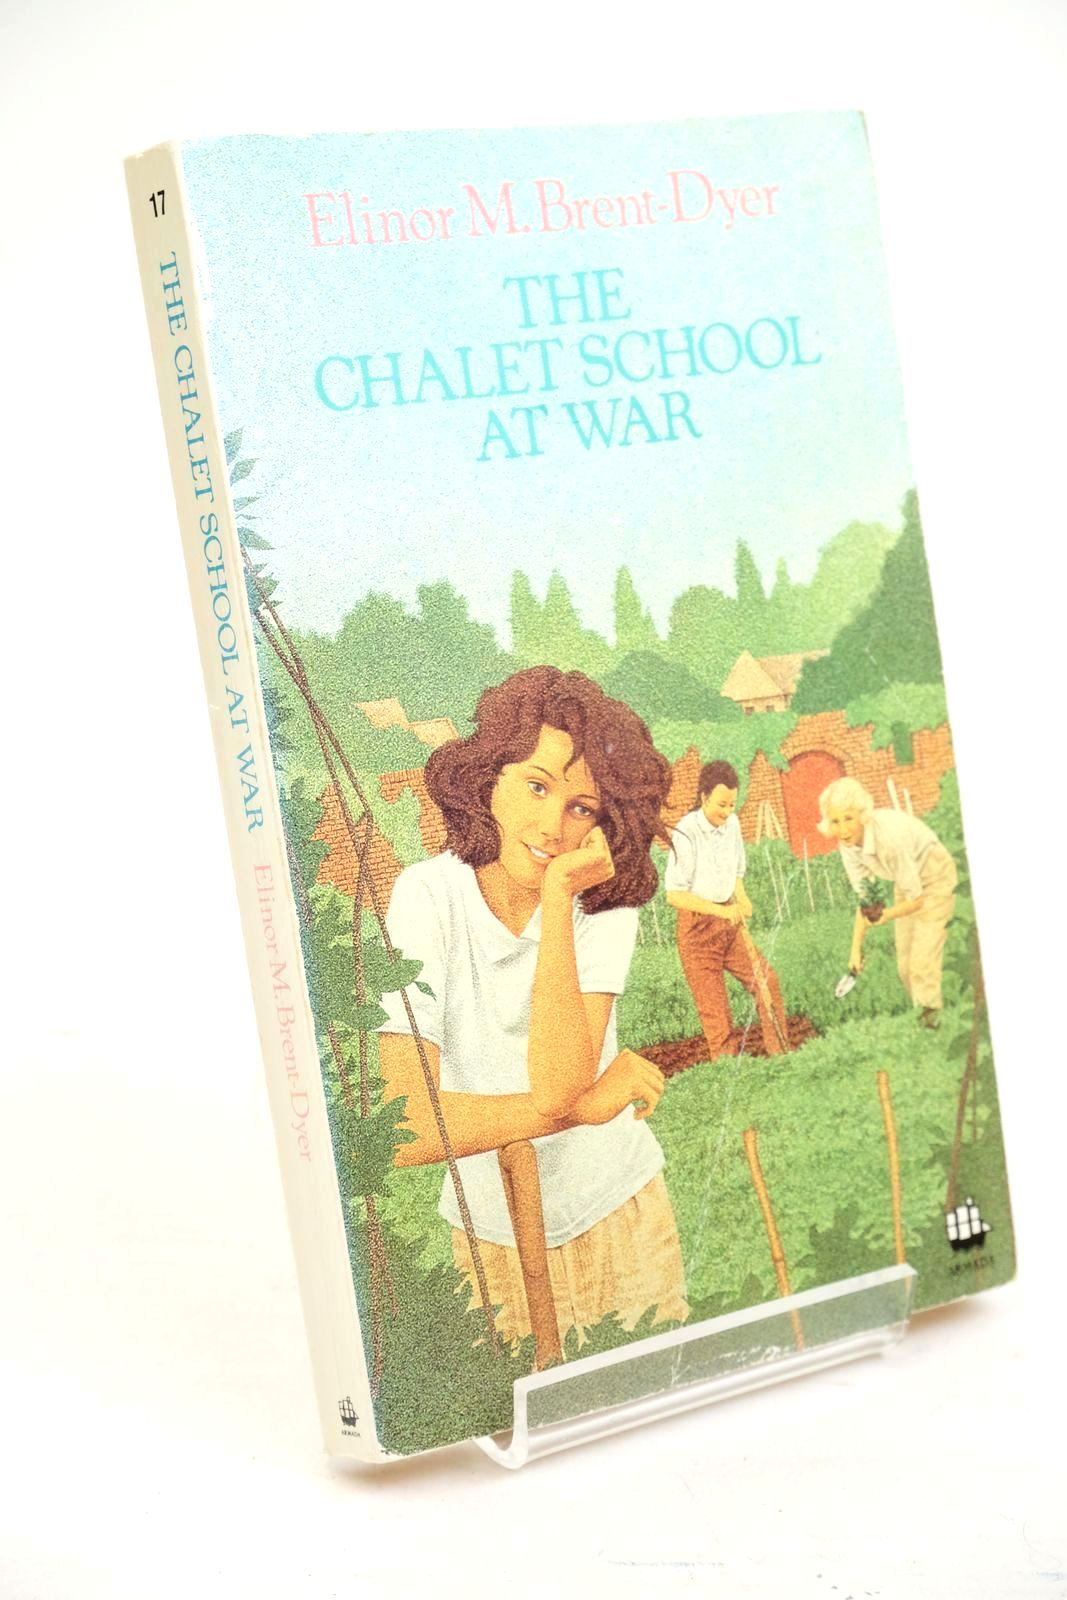 Photo of THE CHALET SCHOOL AT WAR written by Brent-Dyer, Elinor M. published by Armada (STOCK CODE: 1320825)  for sale by Stella & Rose's Books